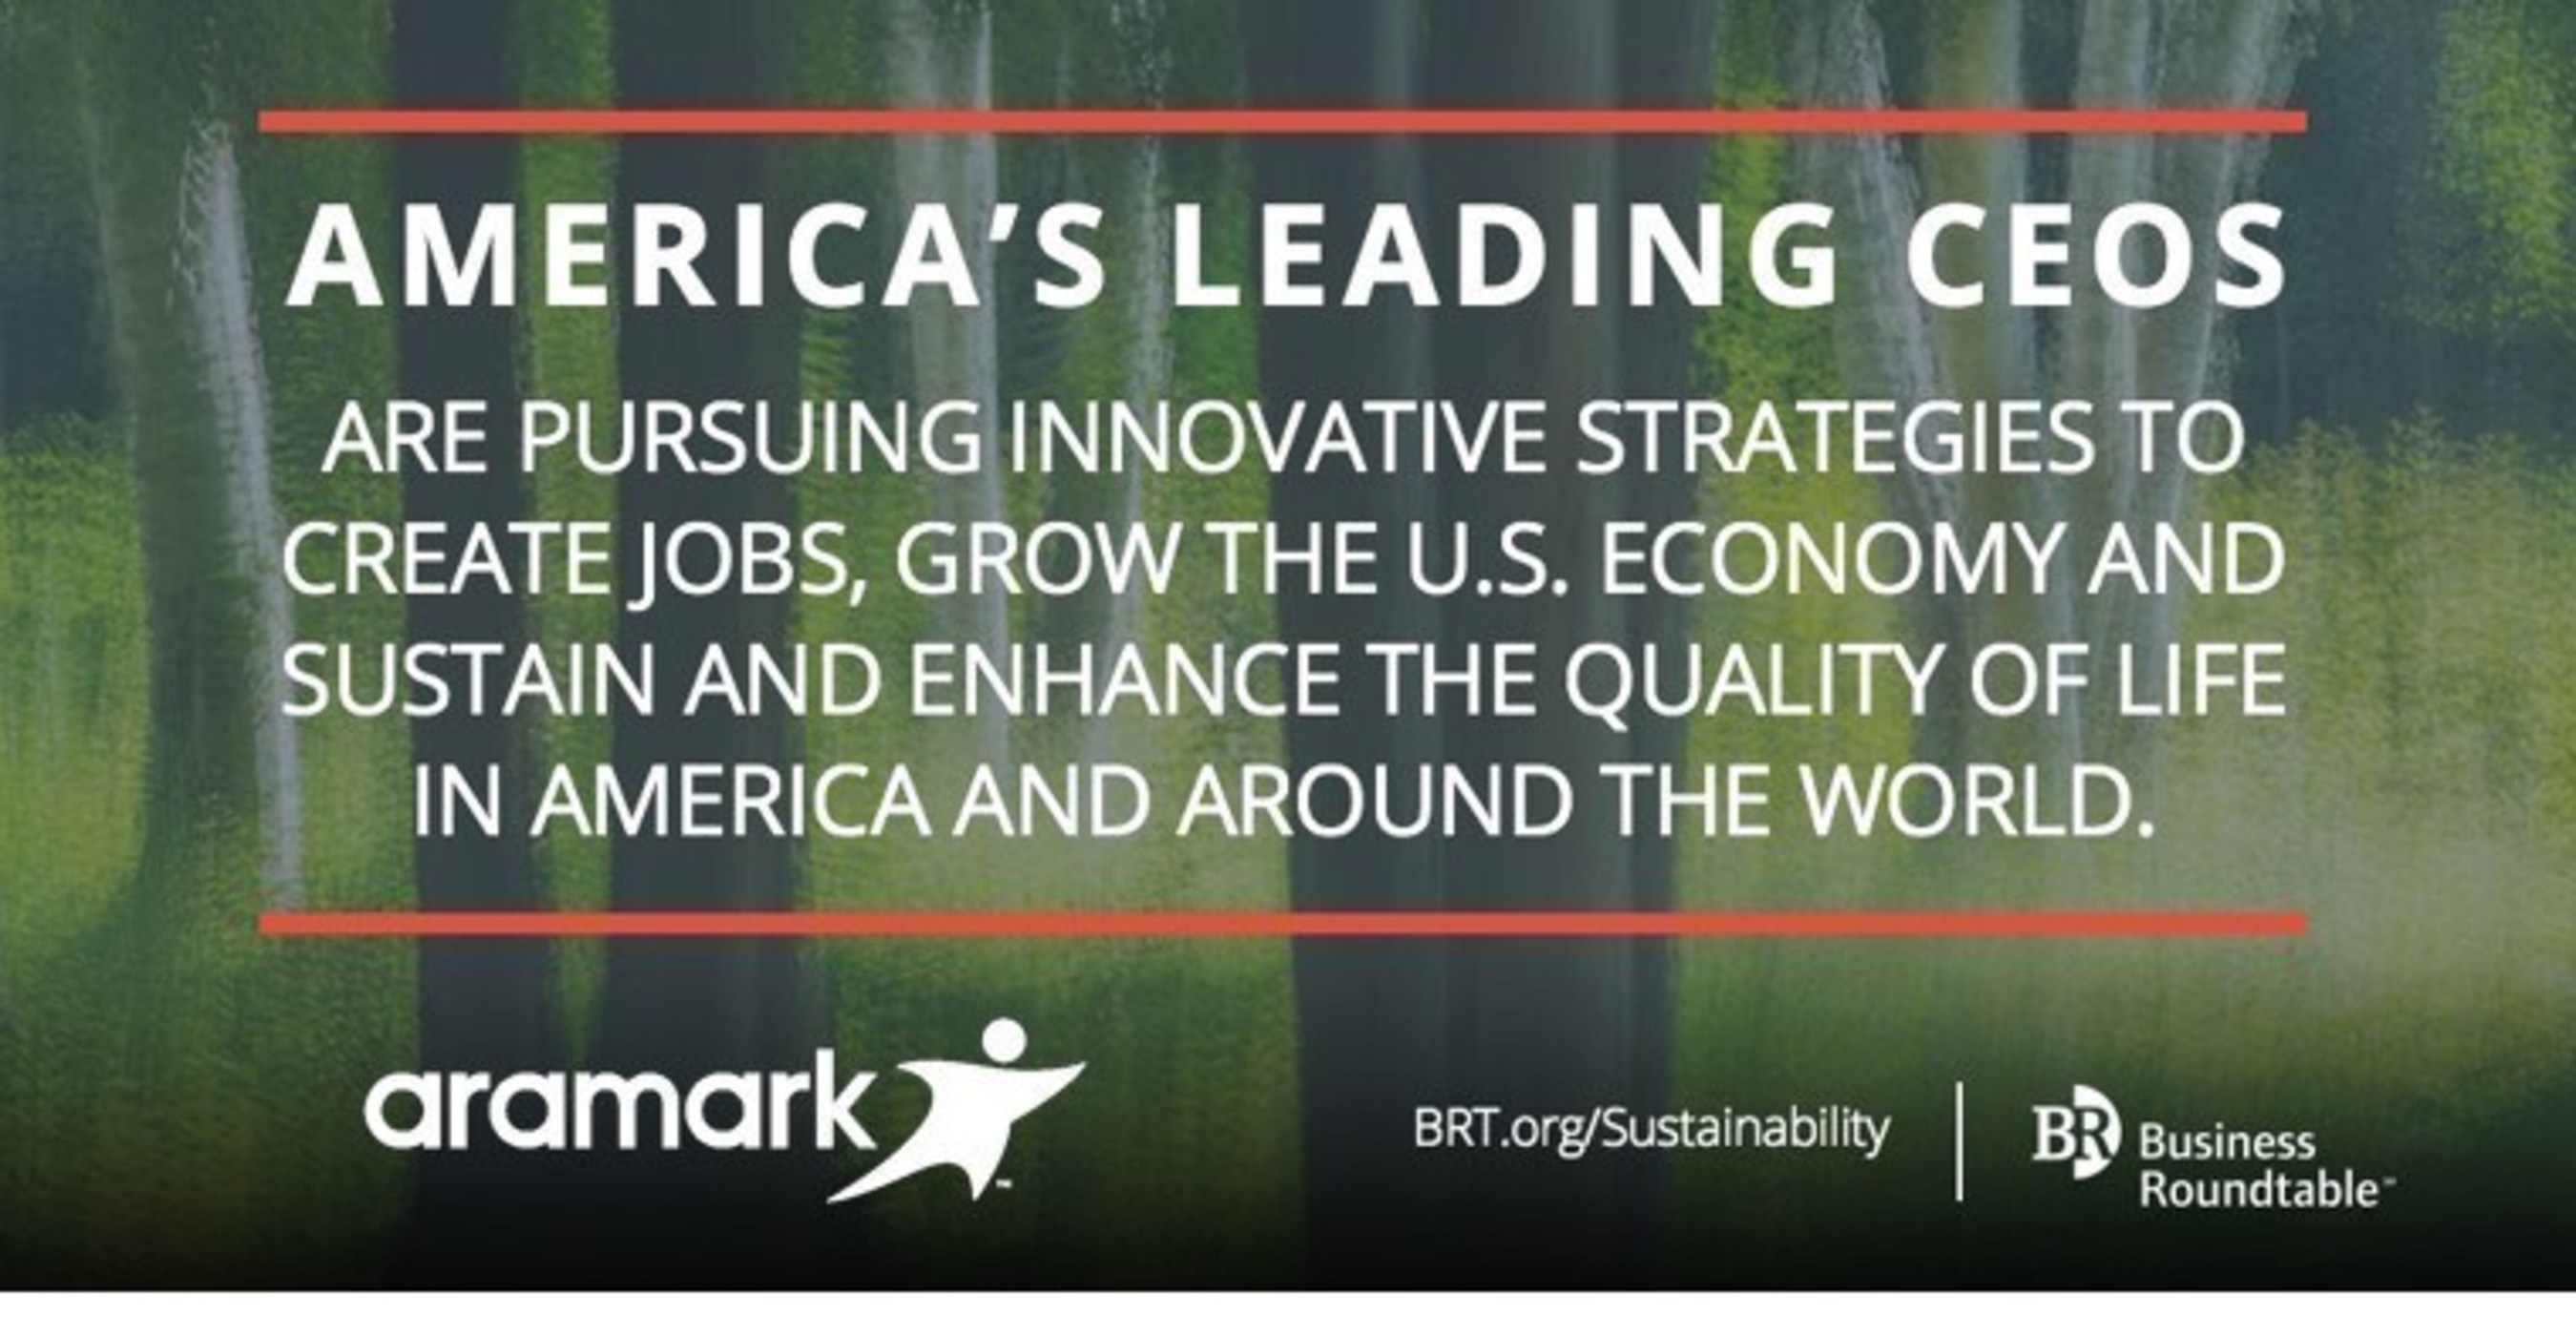 Aramark is recognized for its commitment to healthy lifestyles by the Business Roundtable